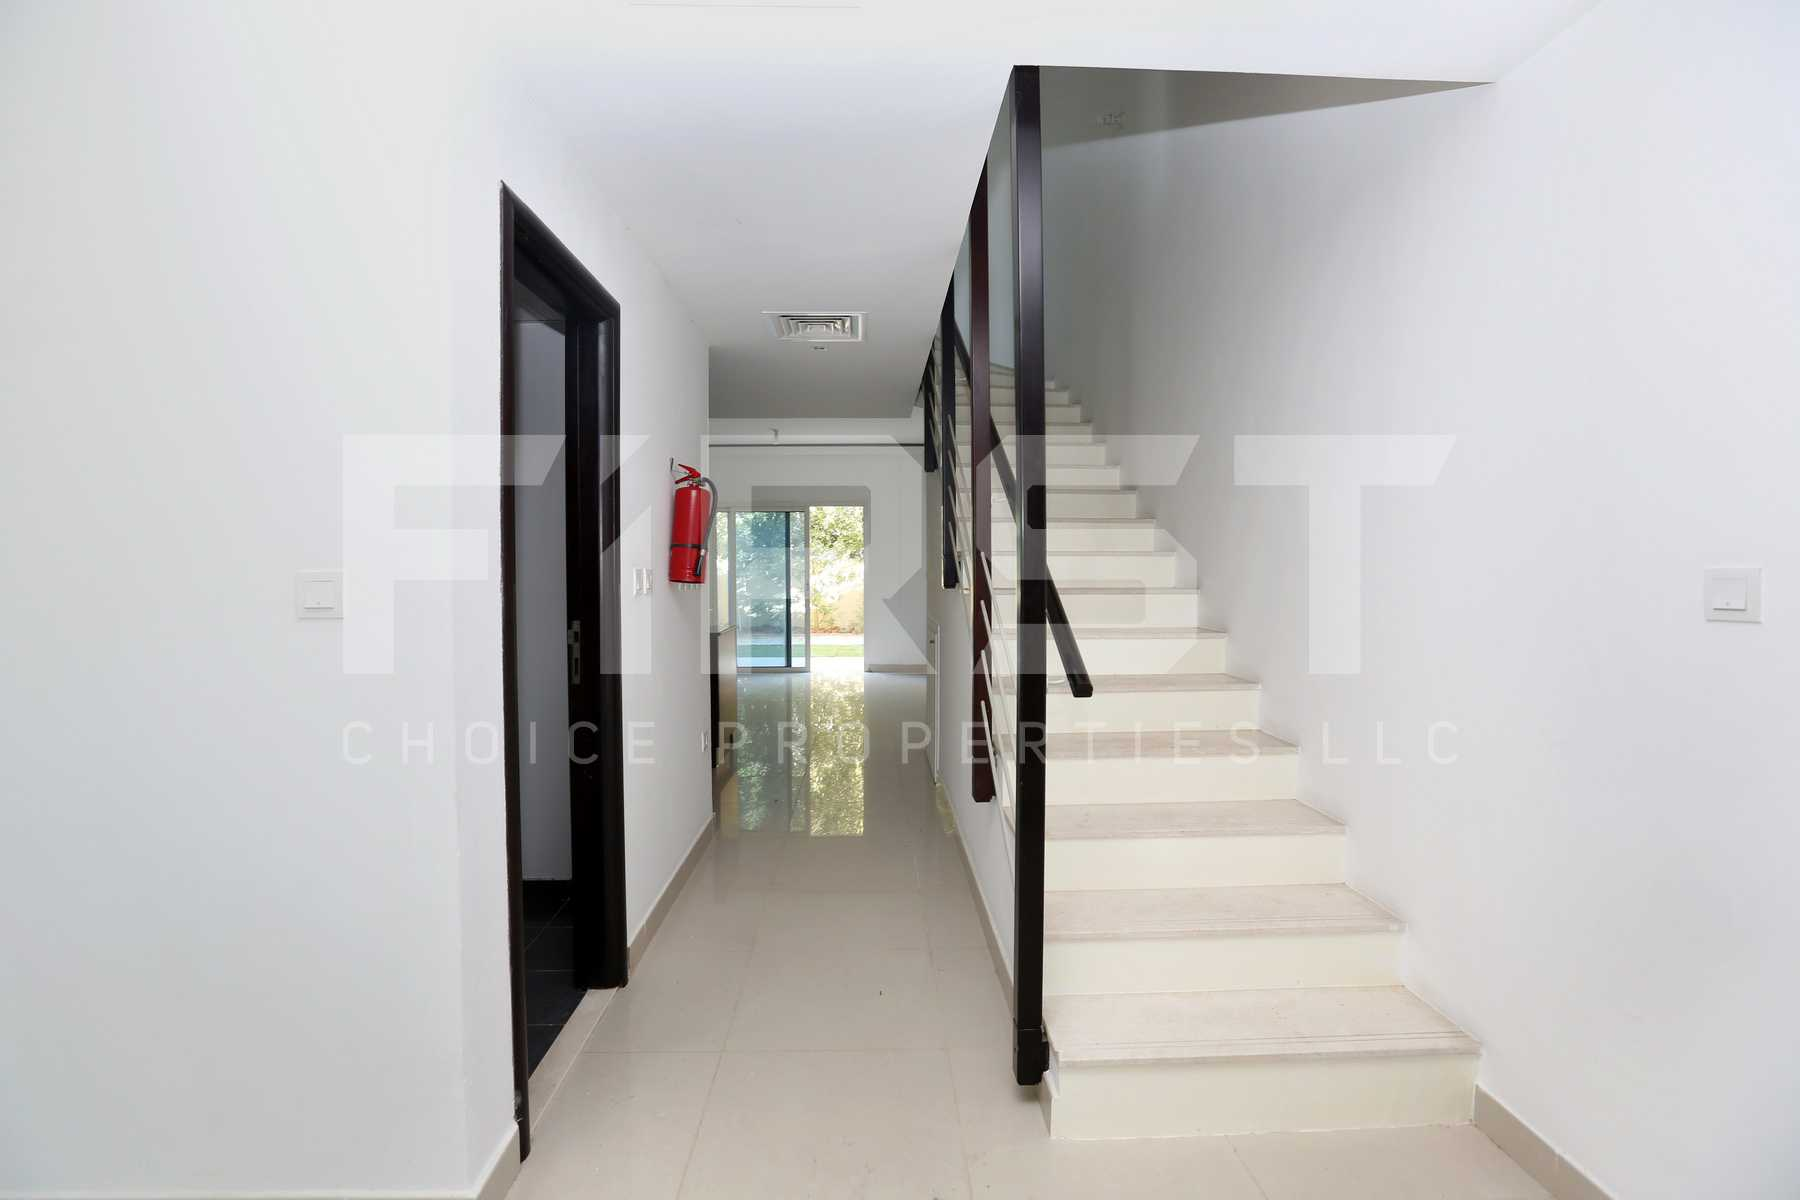 Internal Photo of 2 Bedroom Villa in Al Reef Villas  Al Reef Abu Dhabi UAE 170.2 sq.m 1832 sq.ft (1).jpg